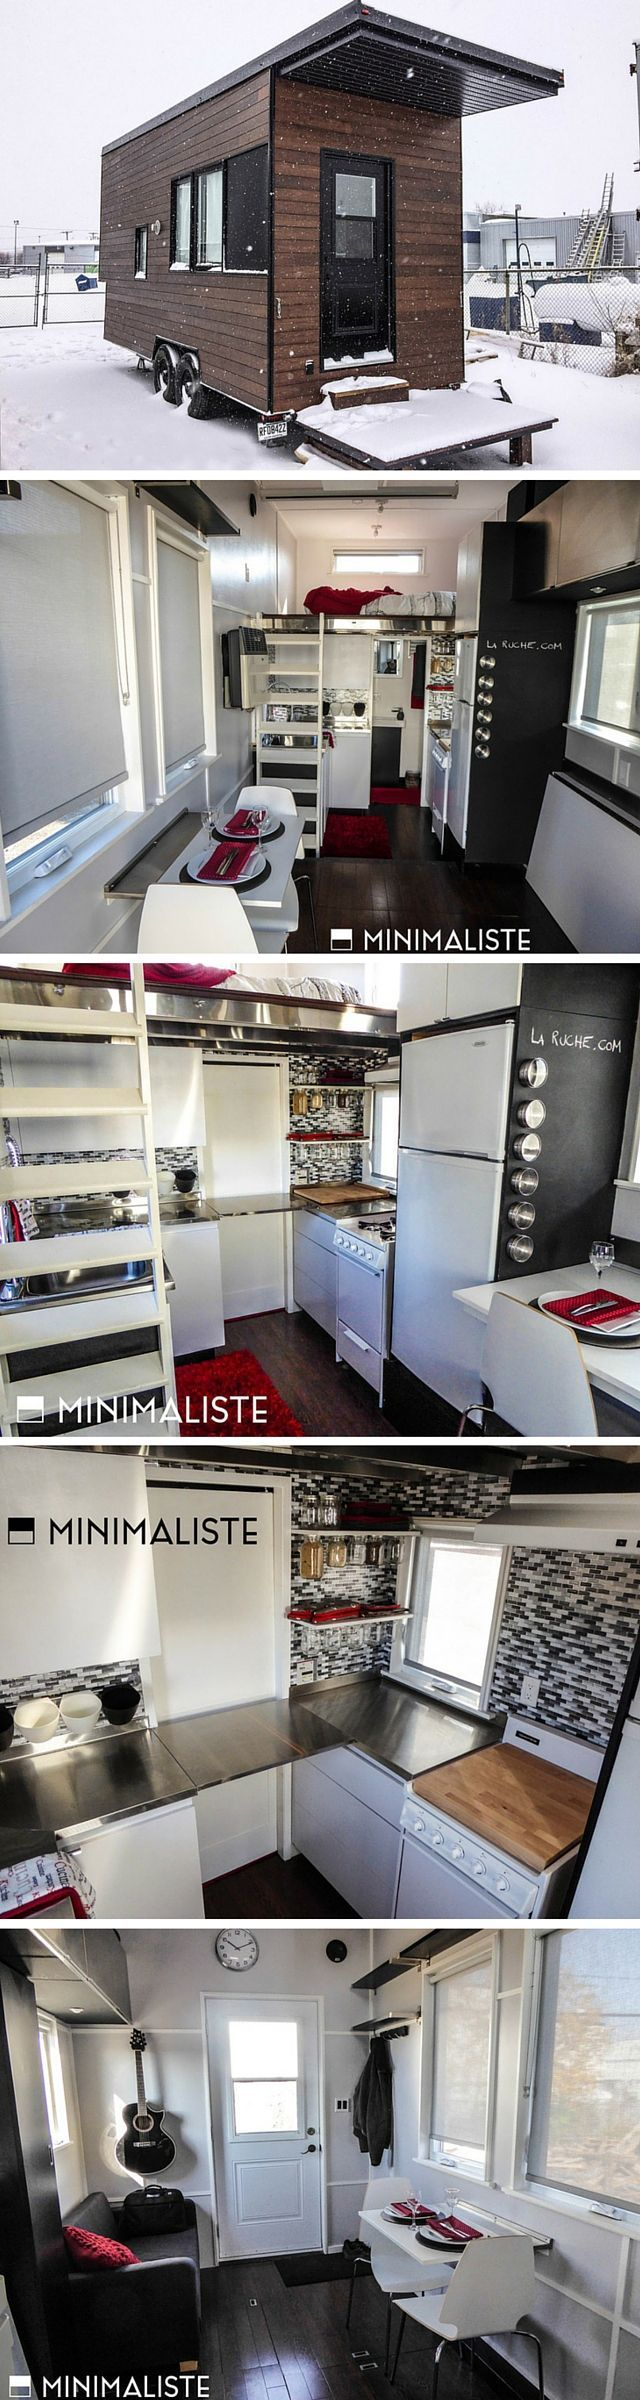 Modern tiny home boasts a big kitchen for foodies treehugger - 97 Best Tiny Houses Images On Pinterest Tiny Living Architecture And Living Spaces